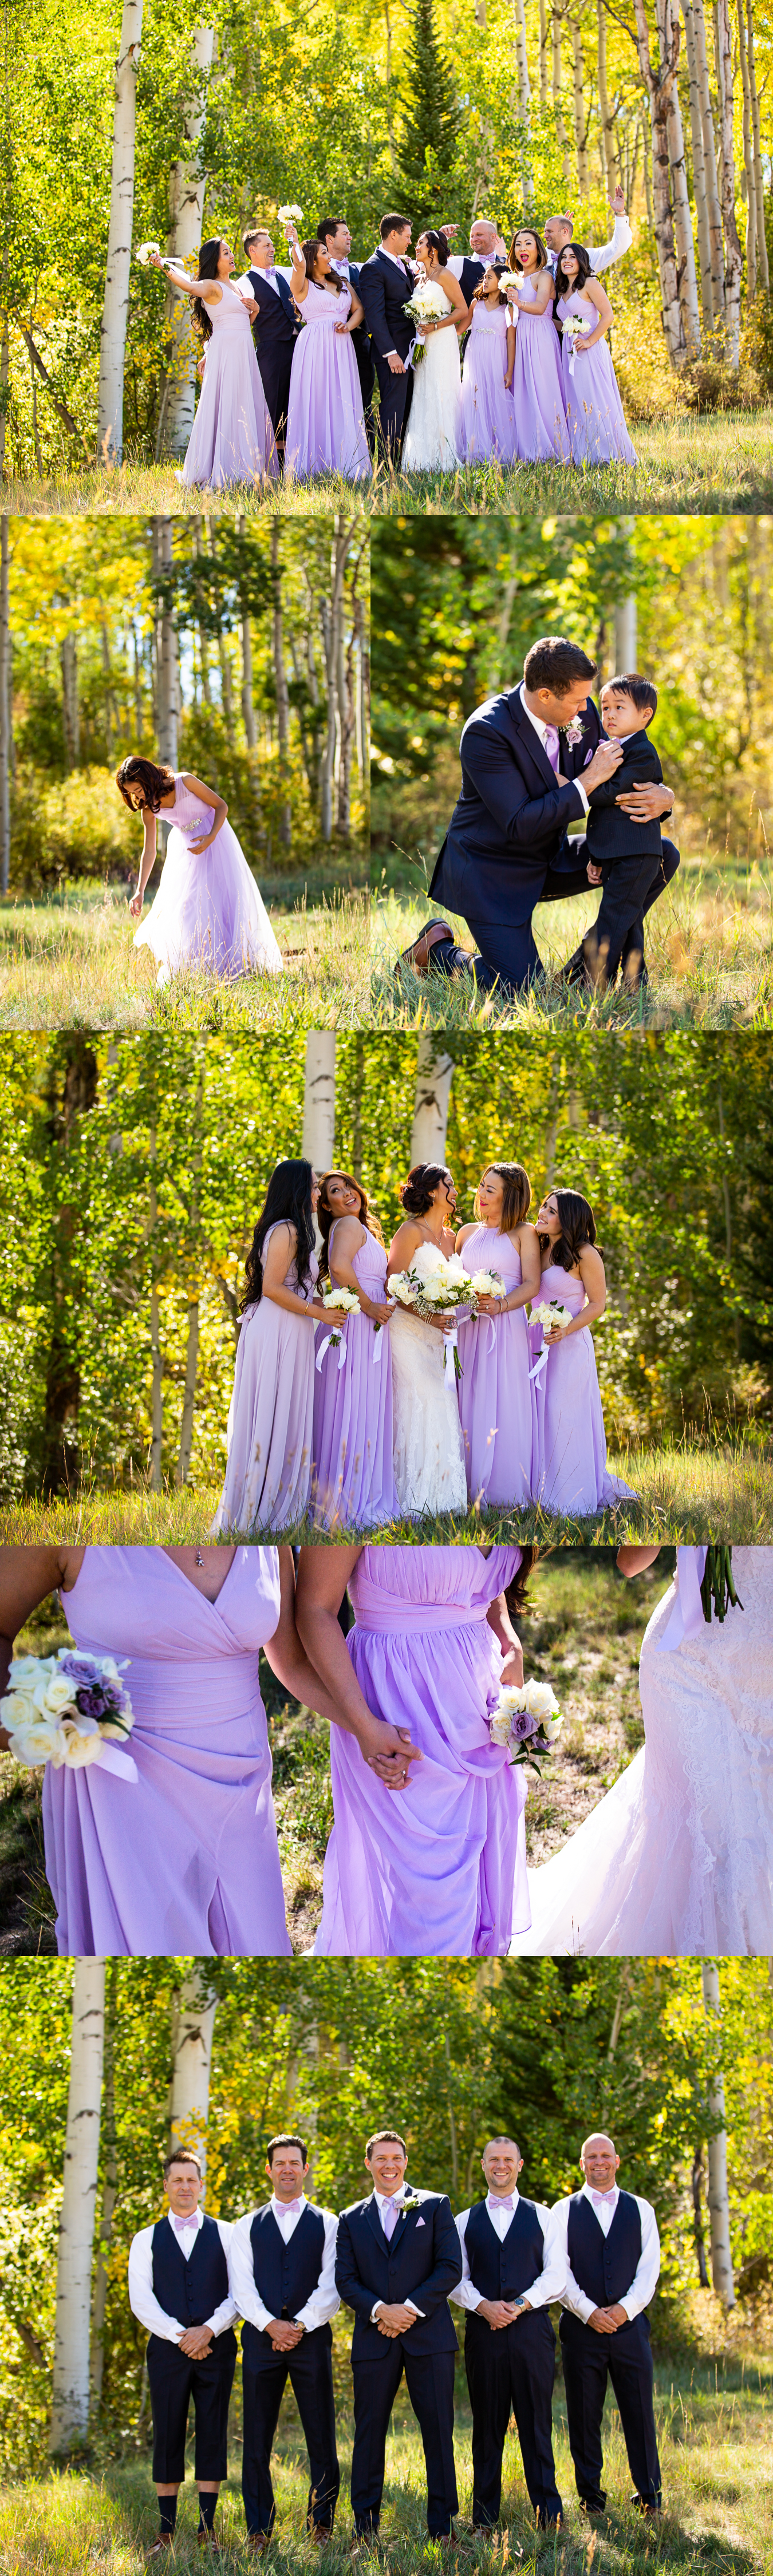 06WeddingPartyPhotosFallAspenColoradoWedding